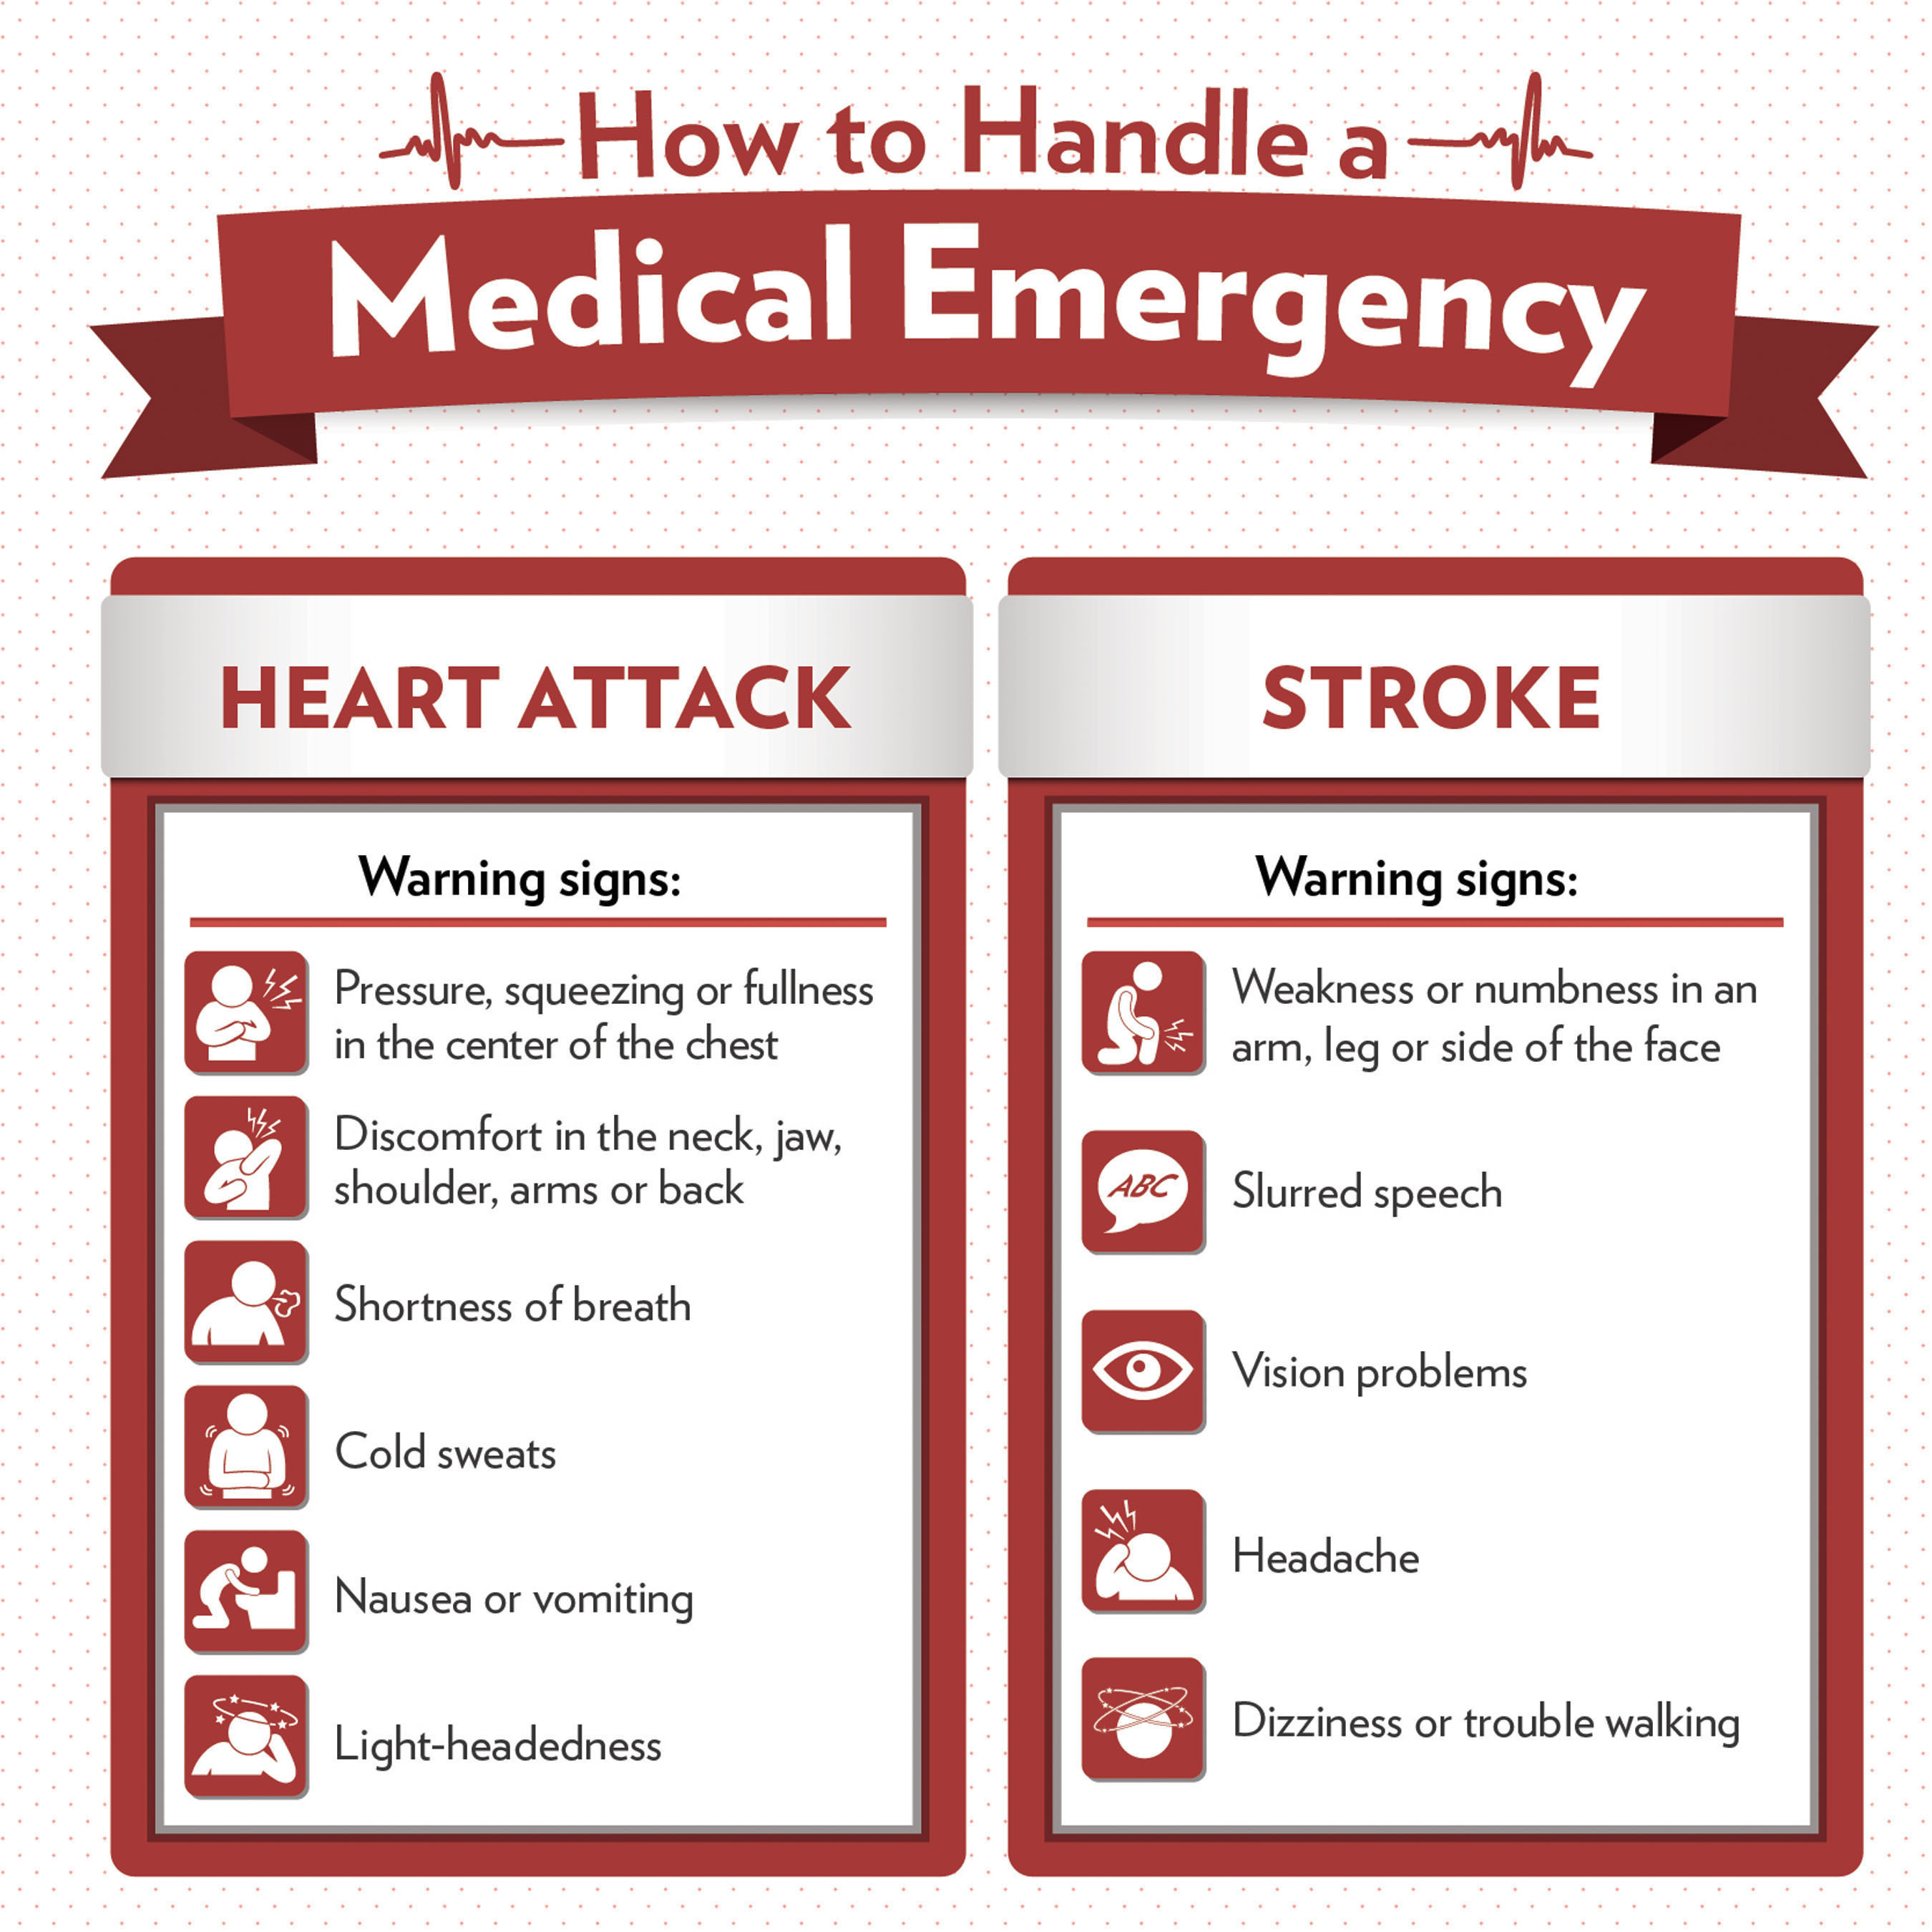 Learn how to handle a medical emergency. Go to mysilverage.com/medicalemergency for the full infographic. ...